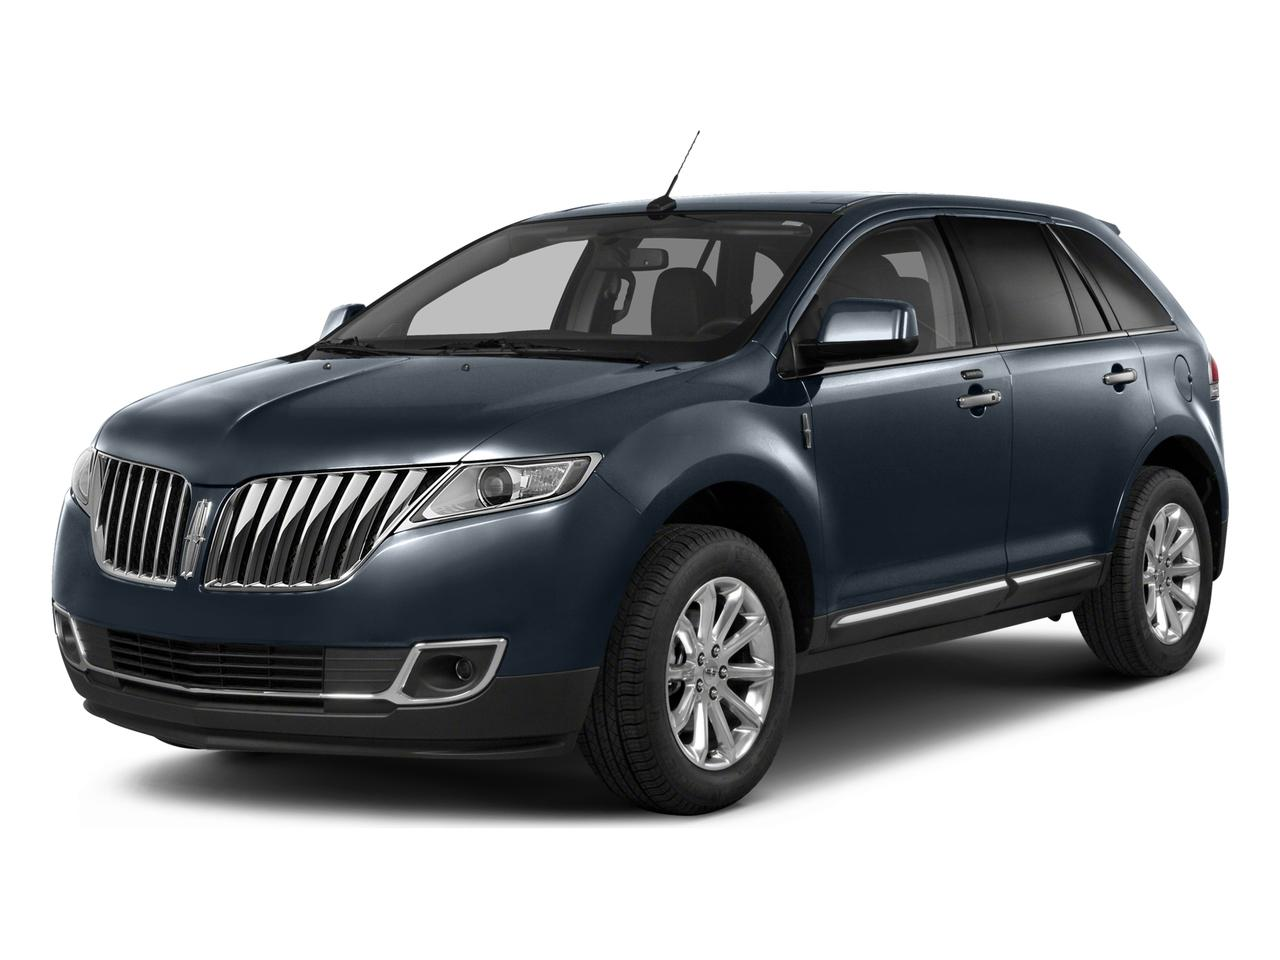 2015 LINCOLN MKX Vehicle Photo in Appleton, WI 54913